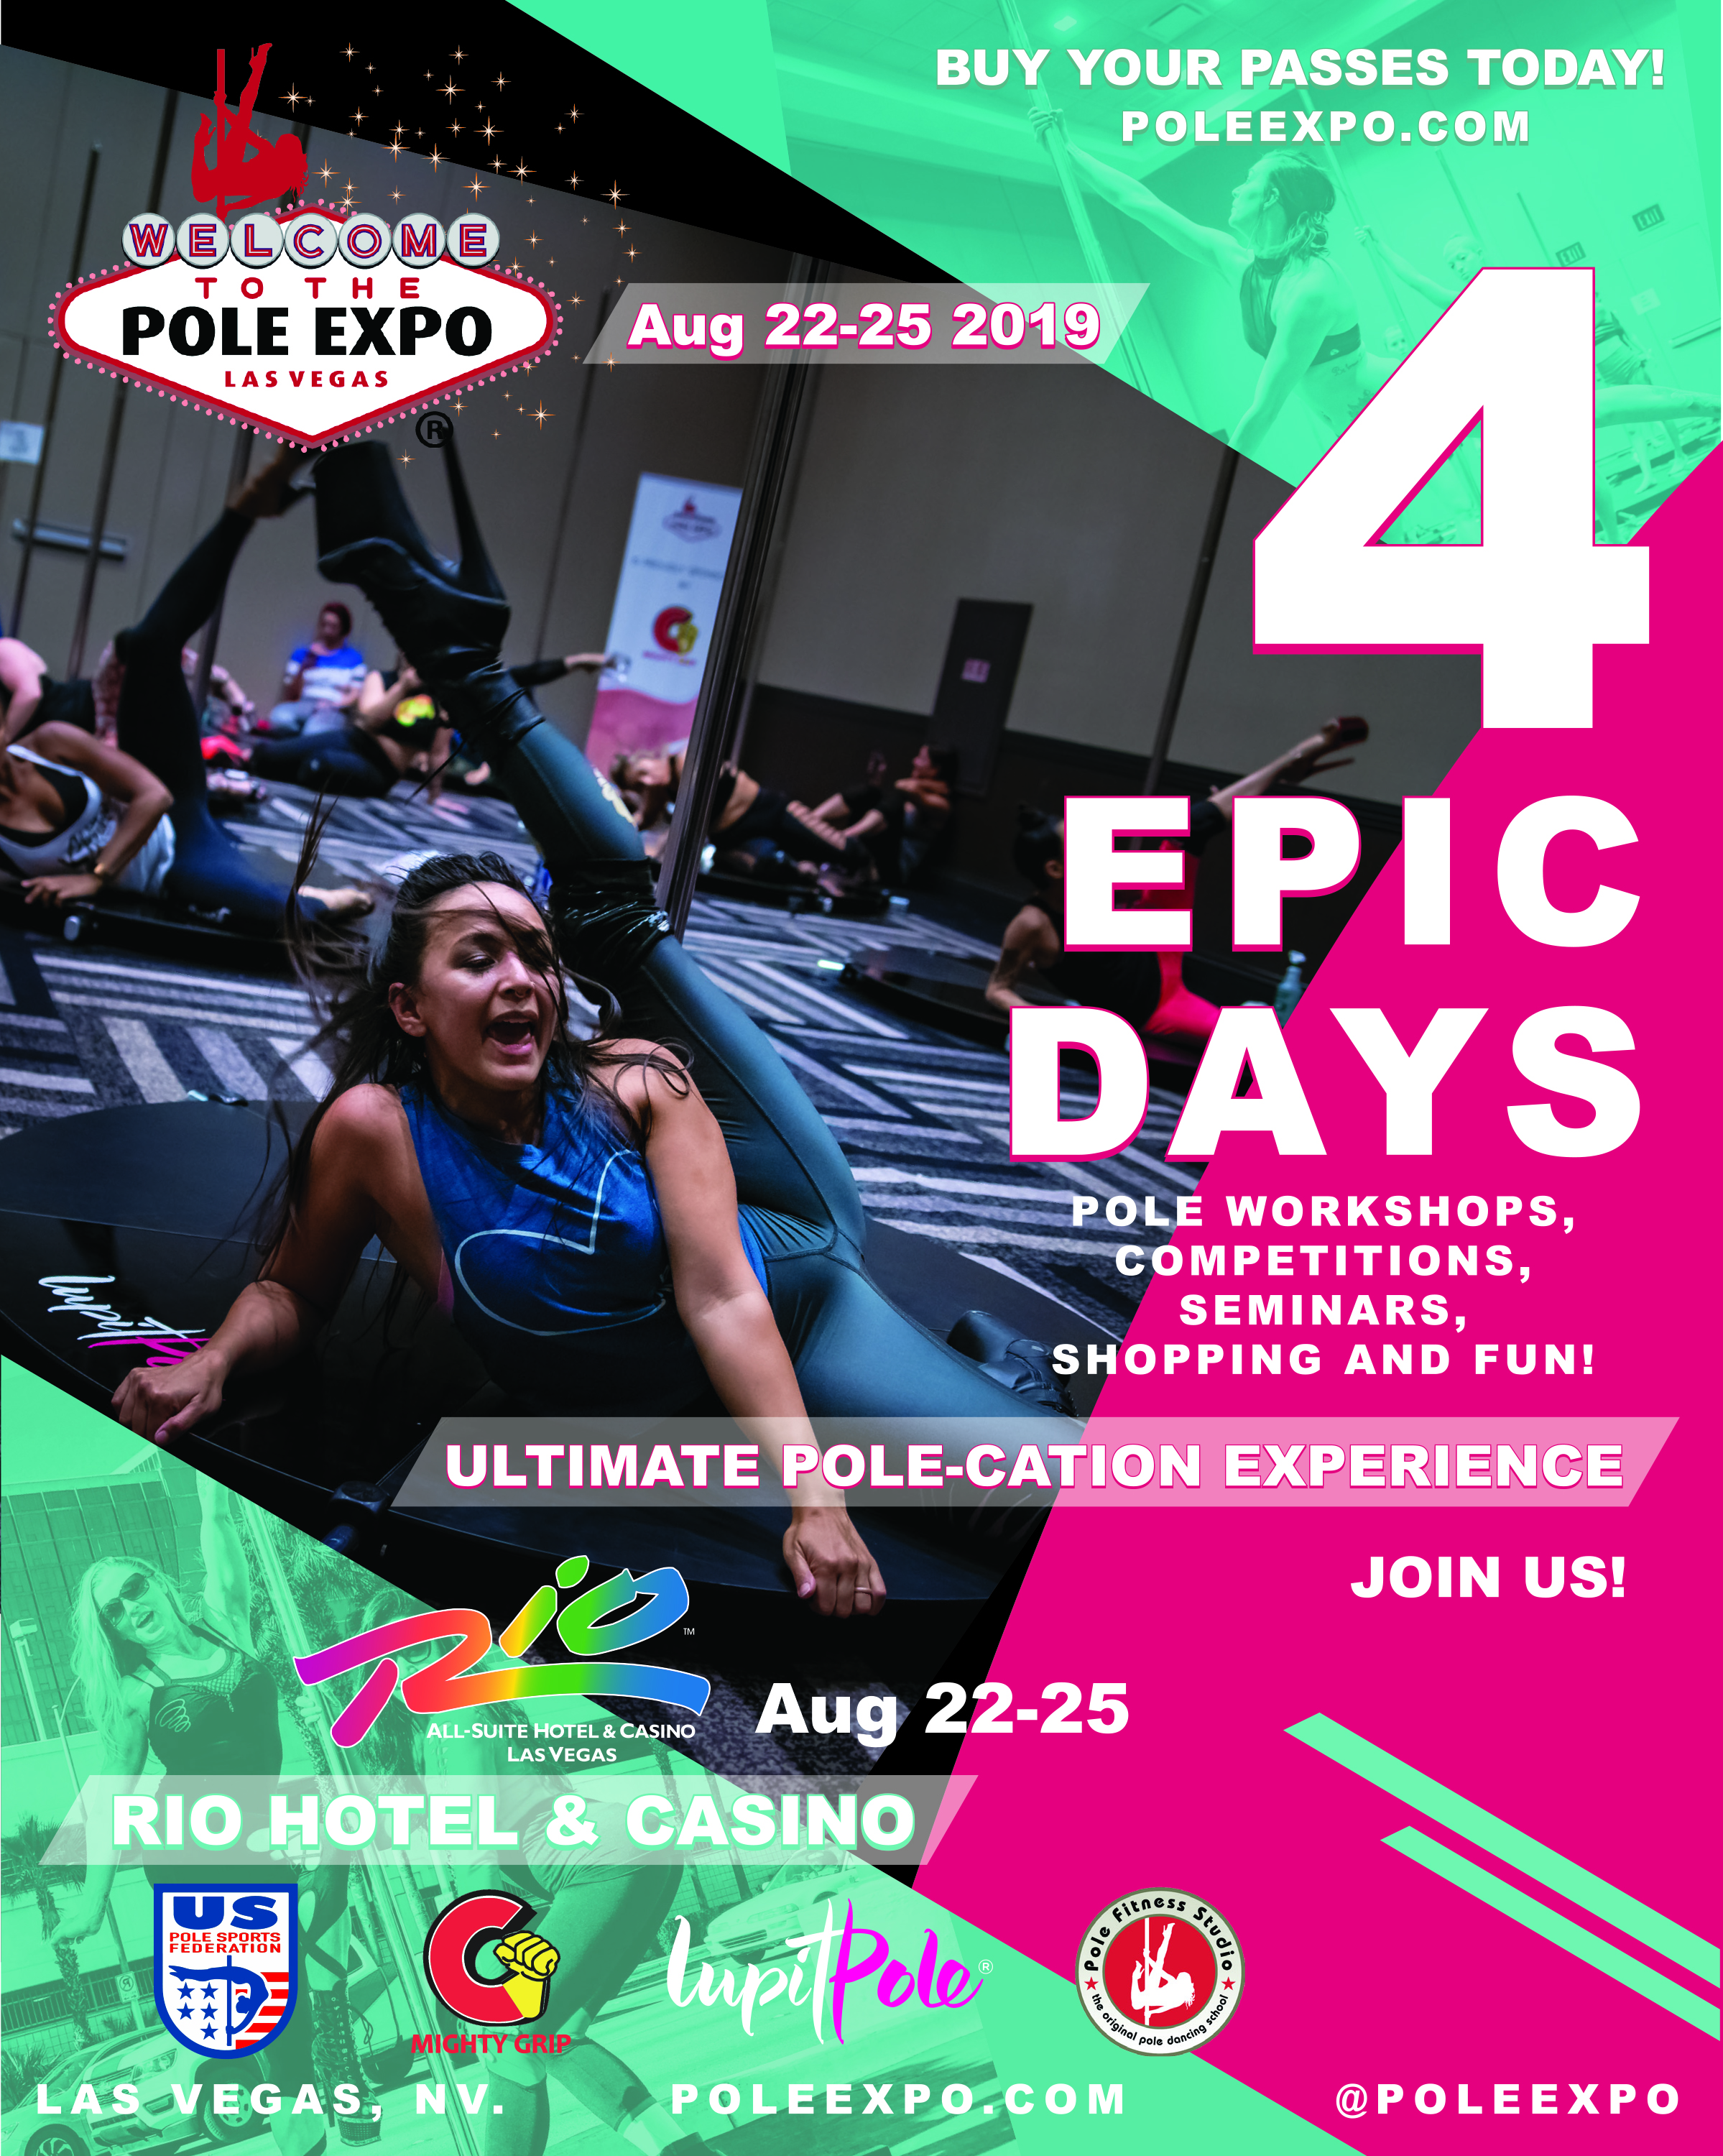 pole expo poster 2019 8x10 2 (3).jpg